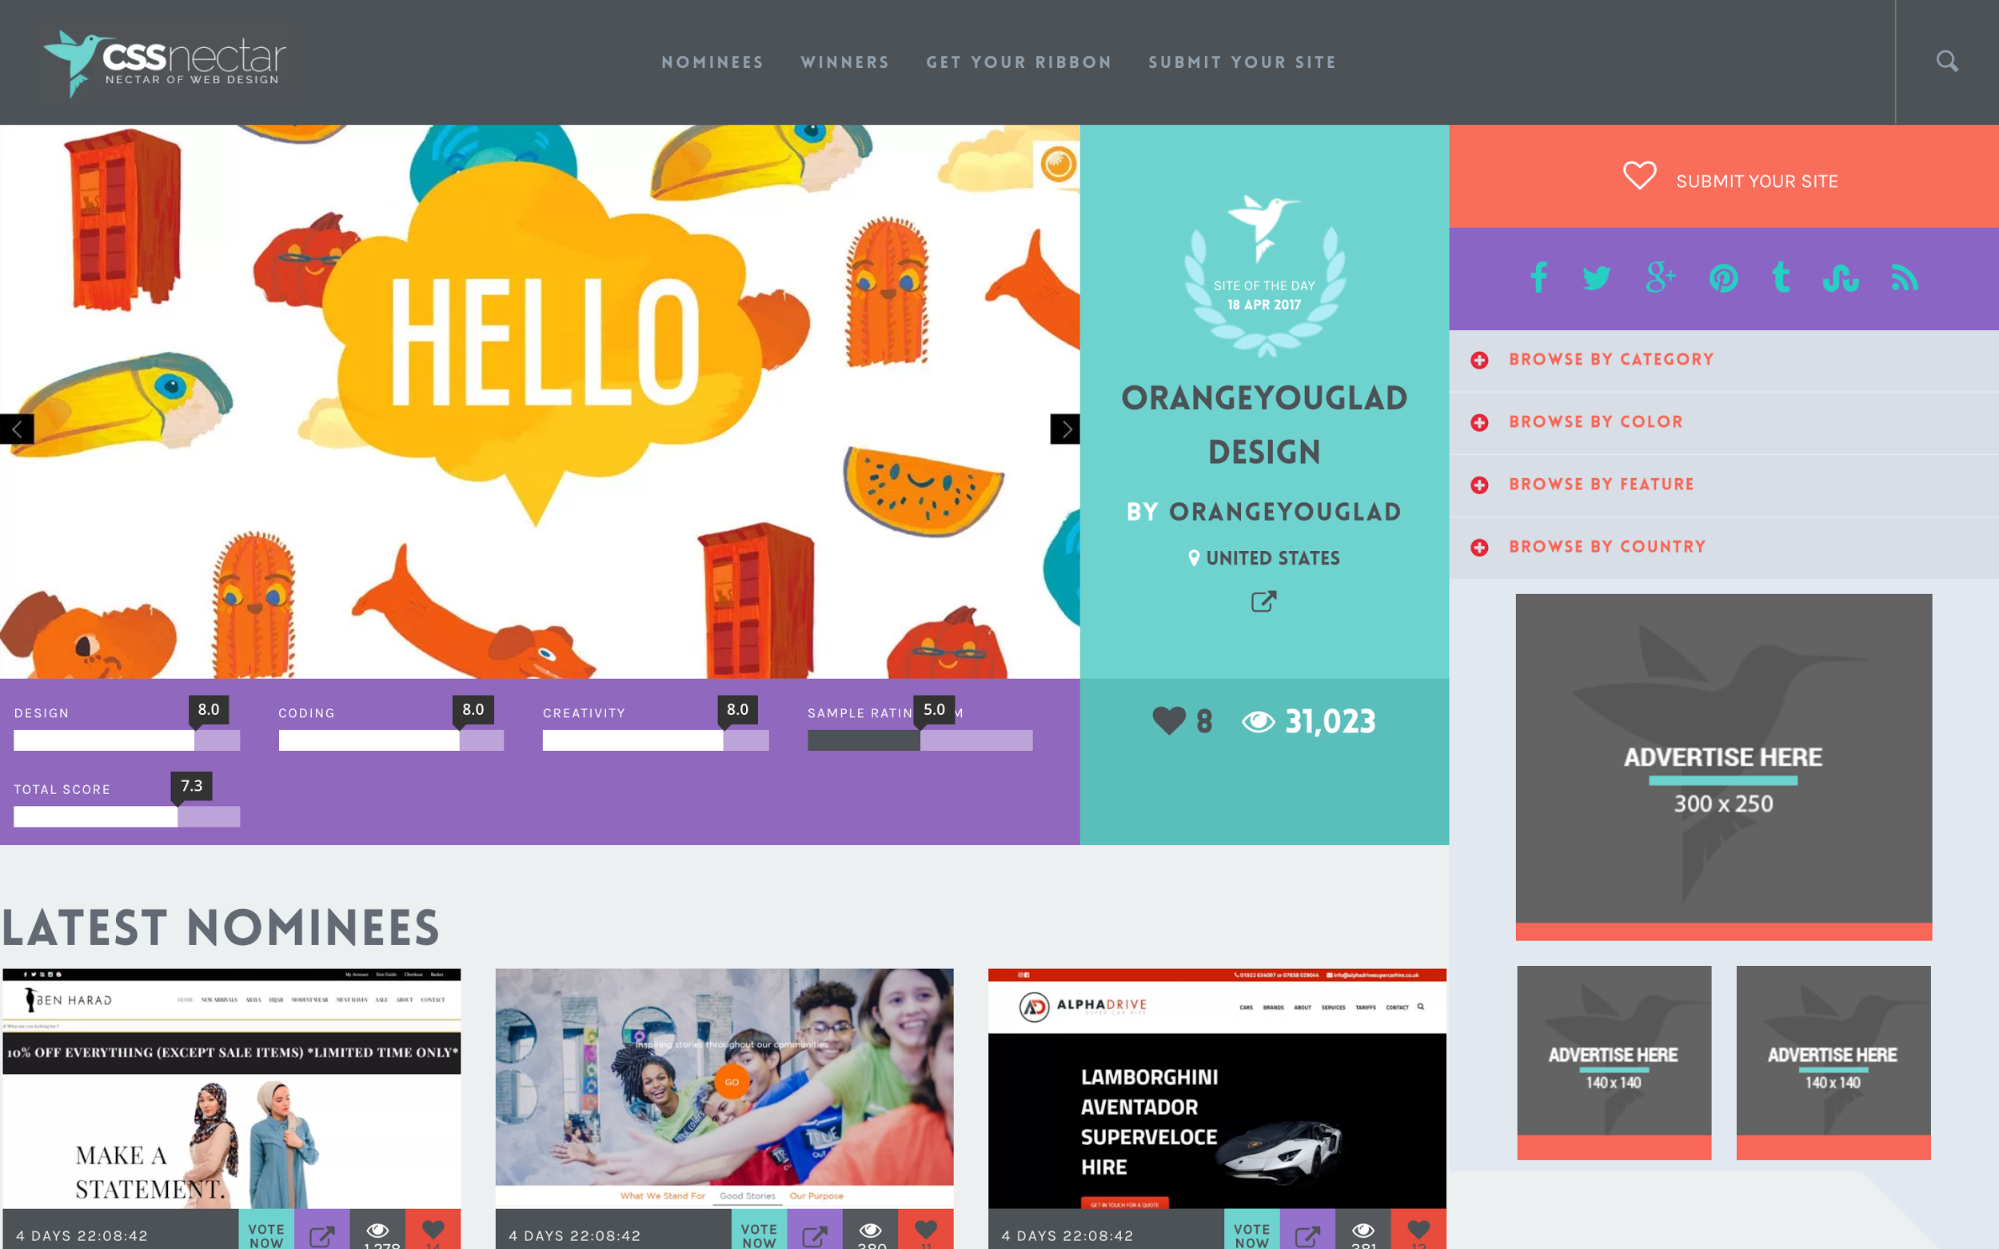 17 amazing sources of web design inspiration | Webflow Blog